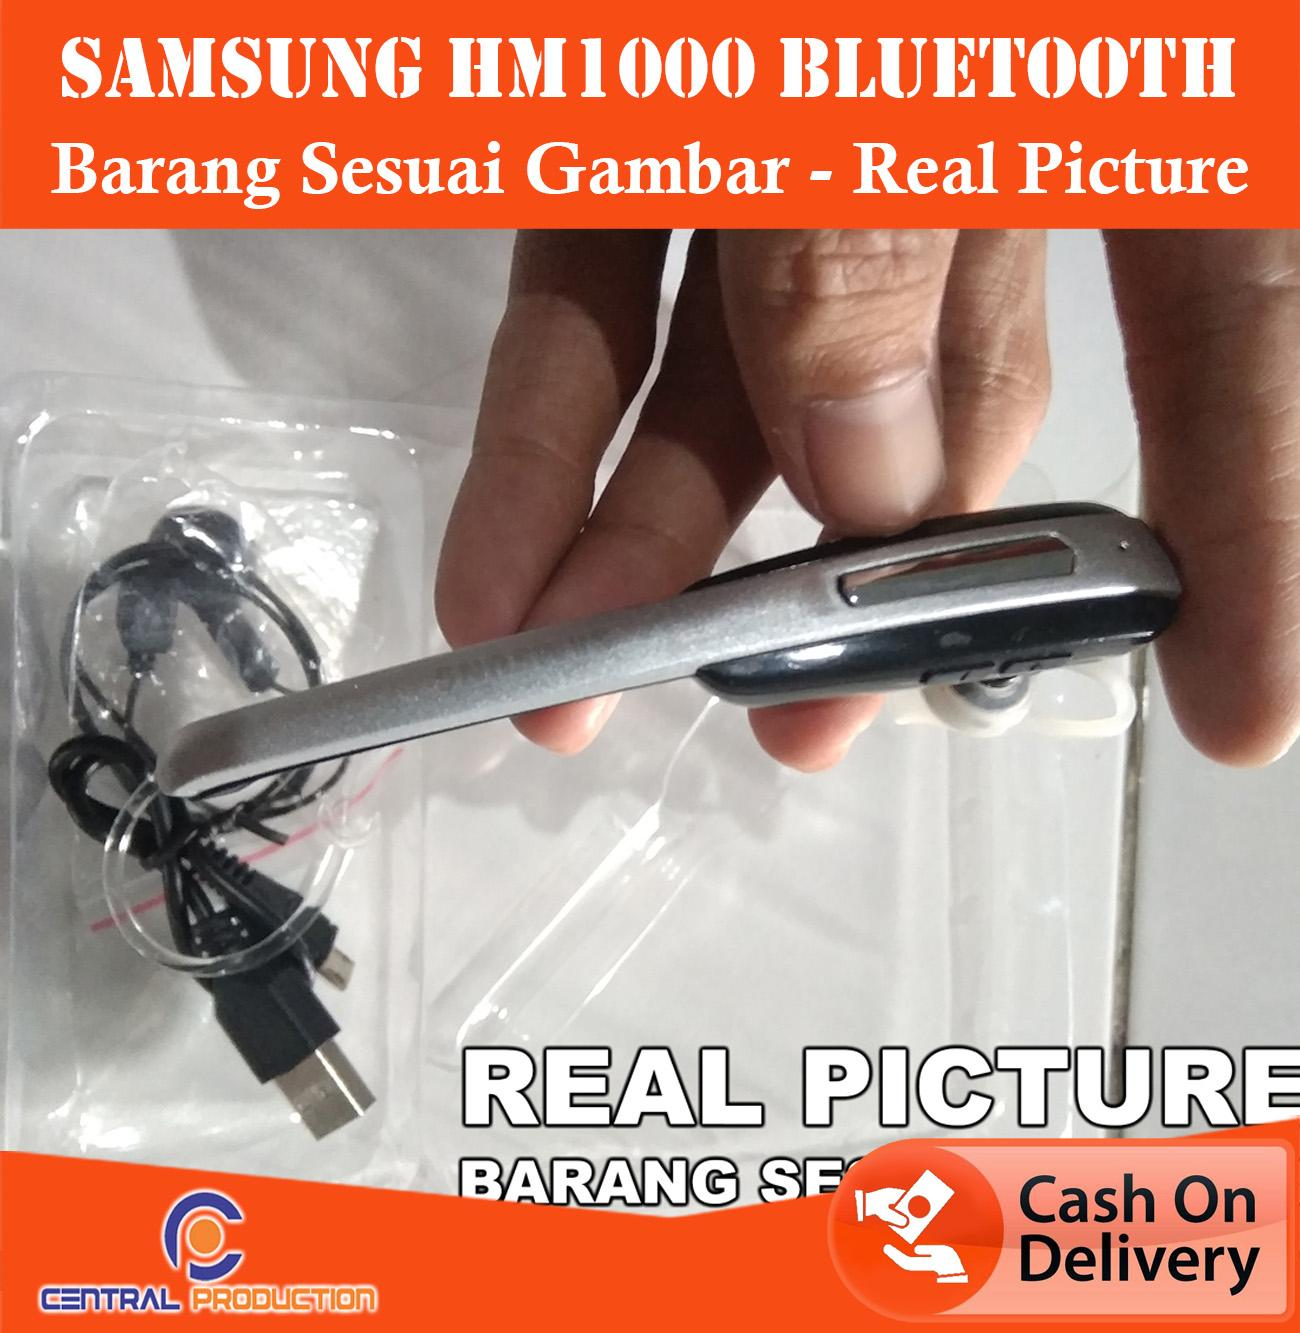 SAMSUNG HM1000 Headset Bluetooth Wireless REAL PICTURE